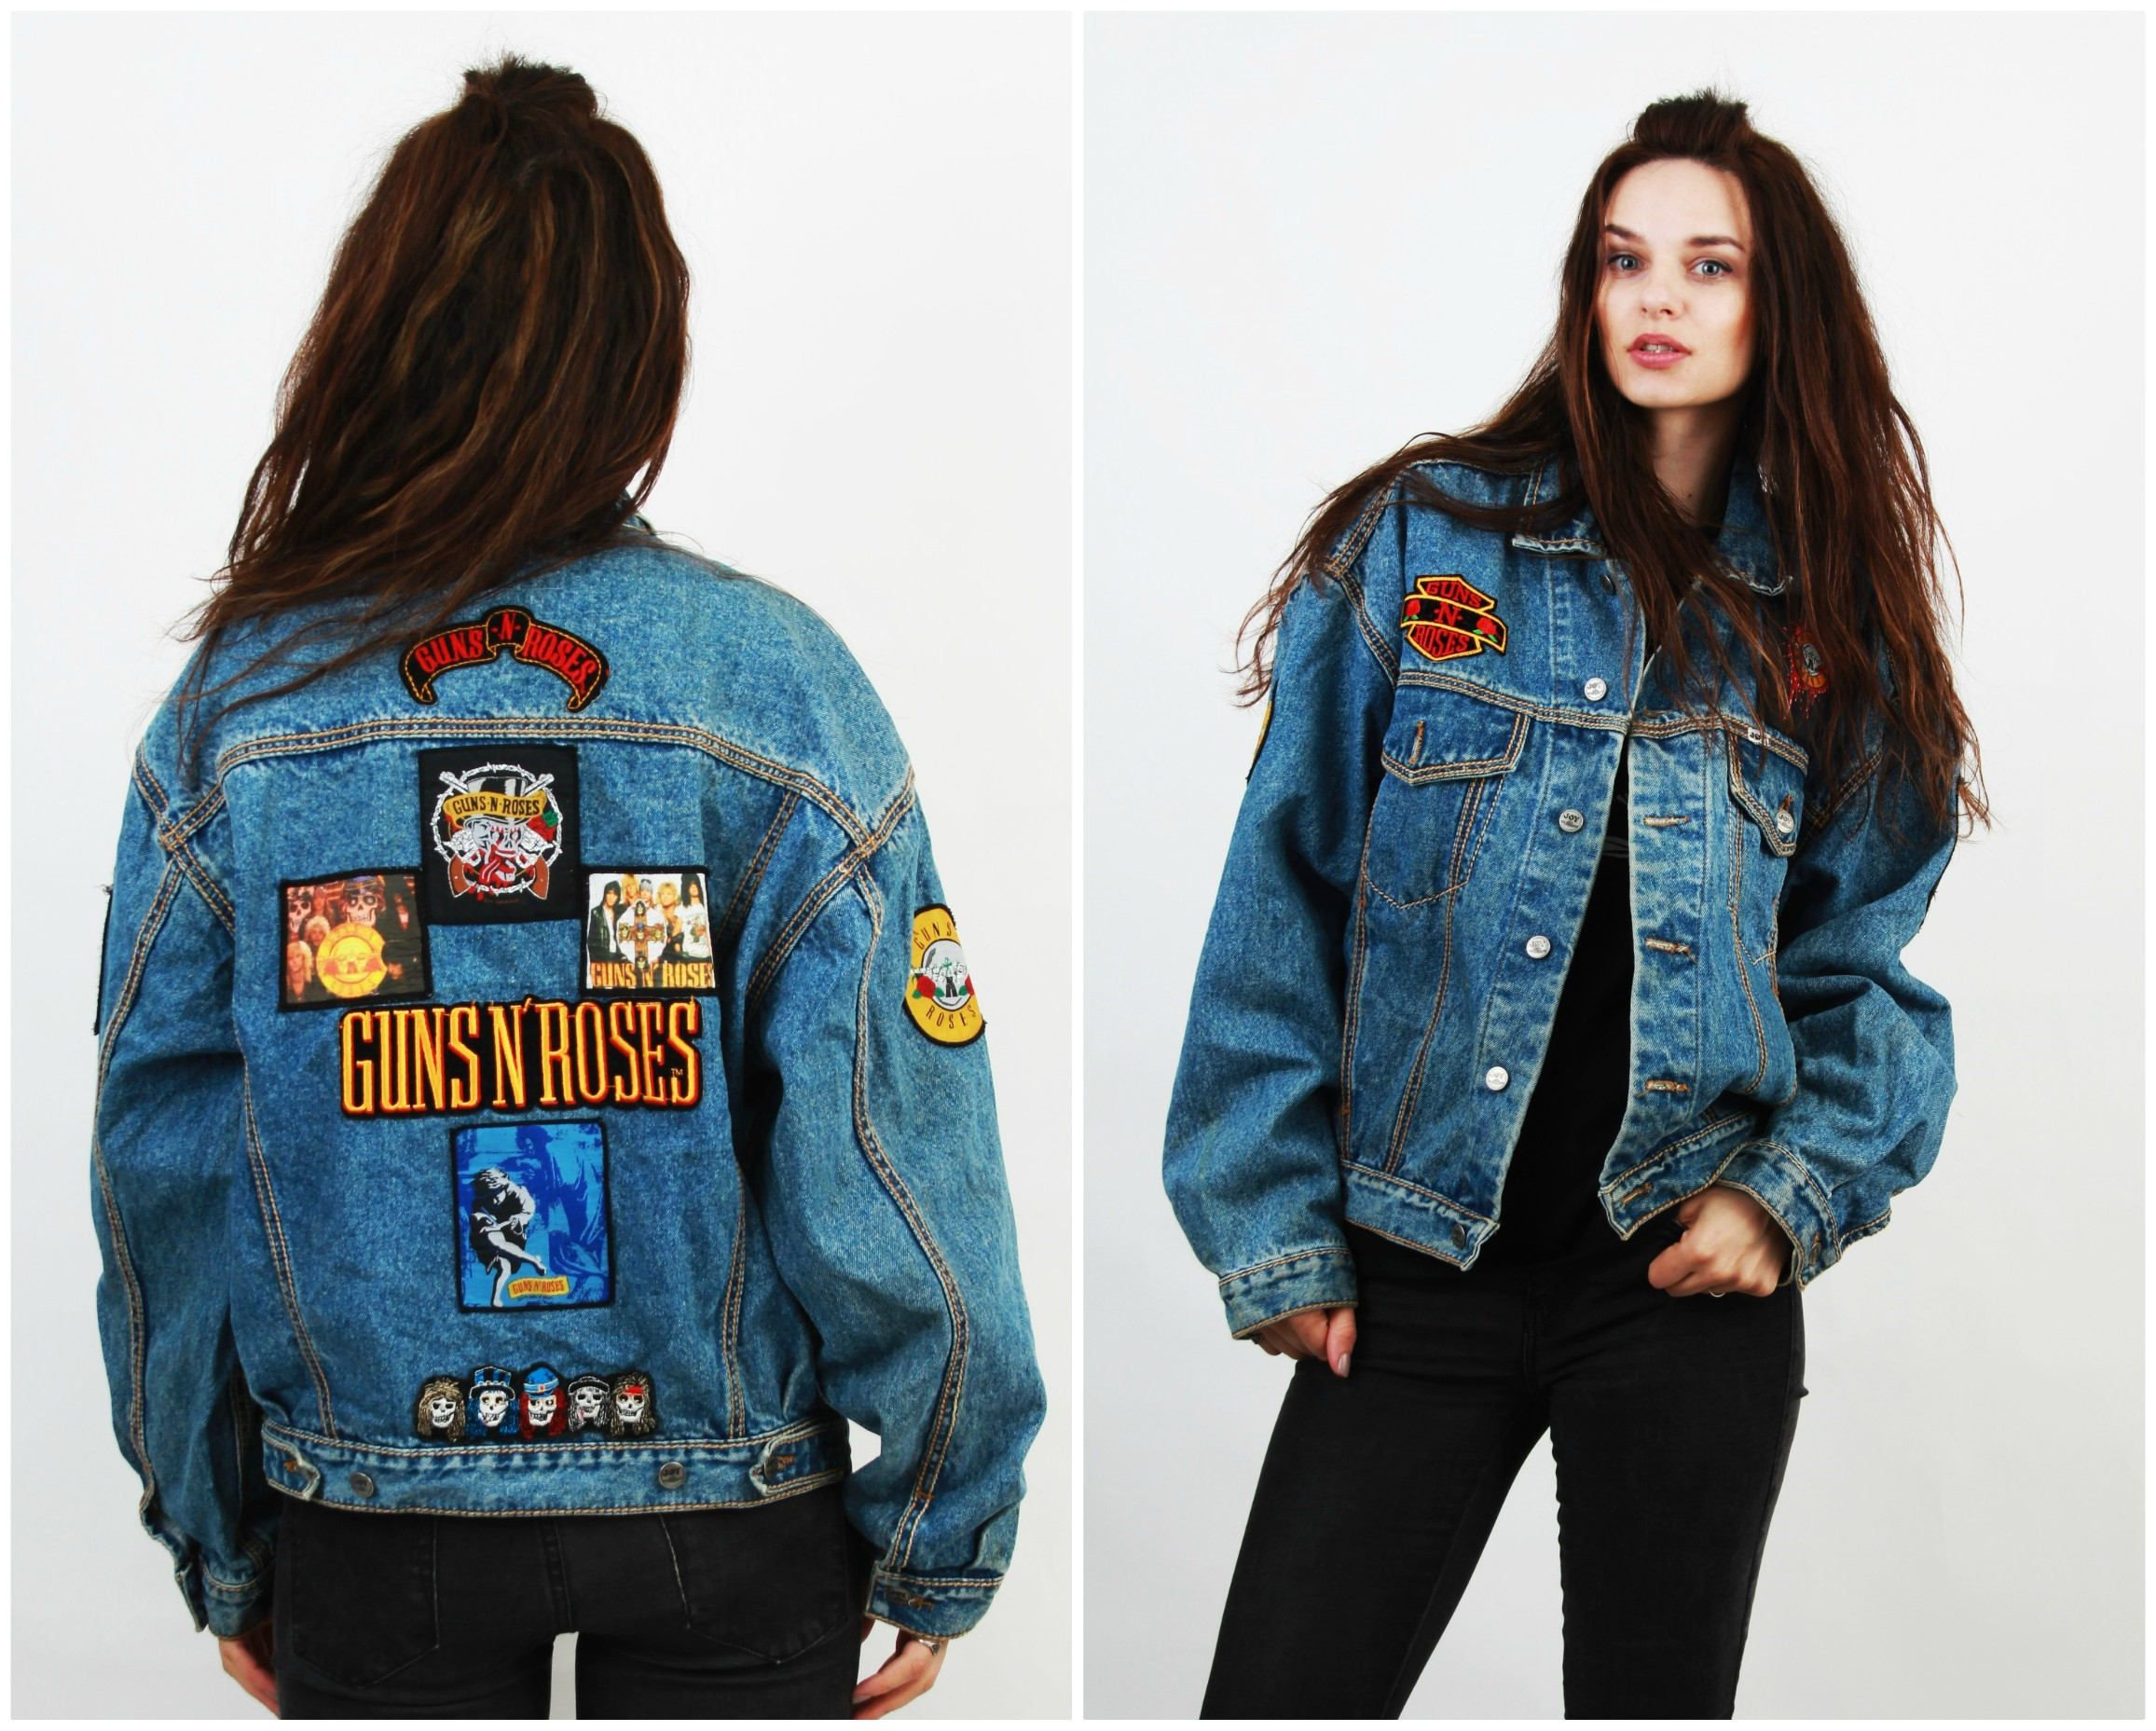 Reserved 90s goth clubkid black shiny pvc motorcycle biker jacket s - Guns N Roses Jacket Replica Axl Rose Gnr Jacket Patched Jacket Patch